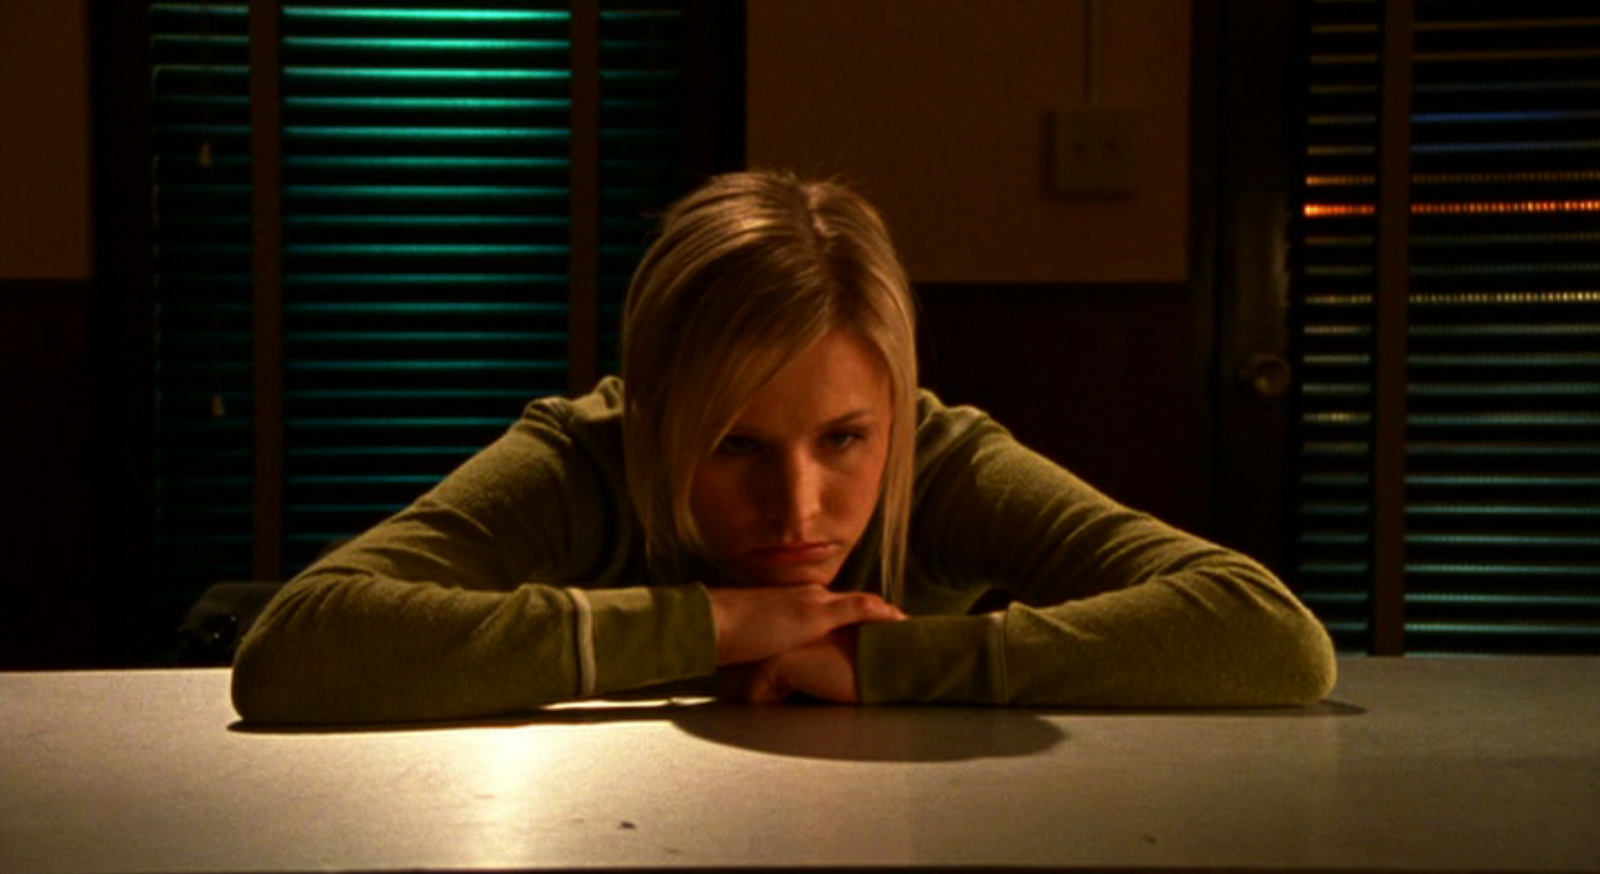 Lost in the Movies: Veronica Mars -